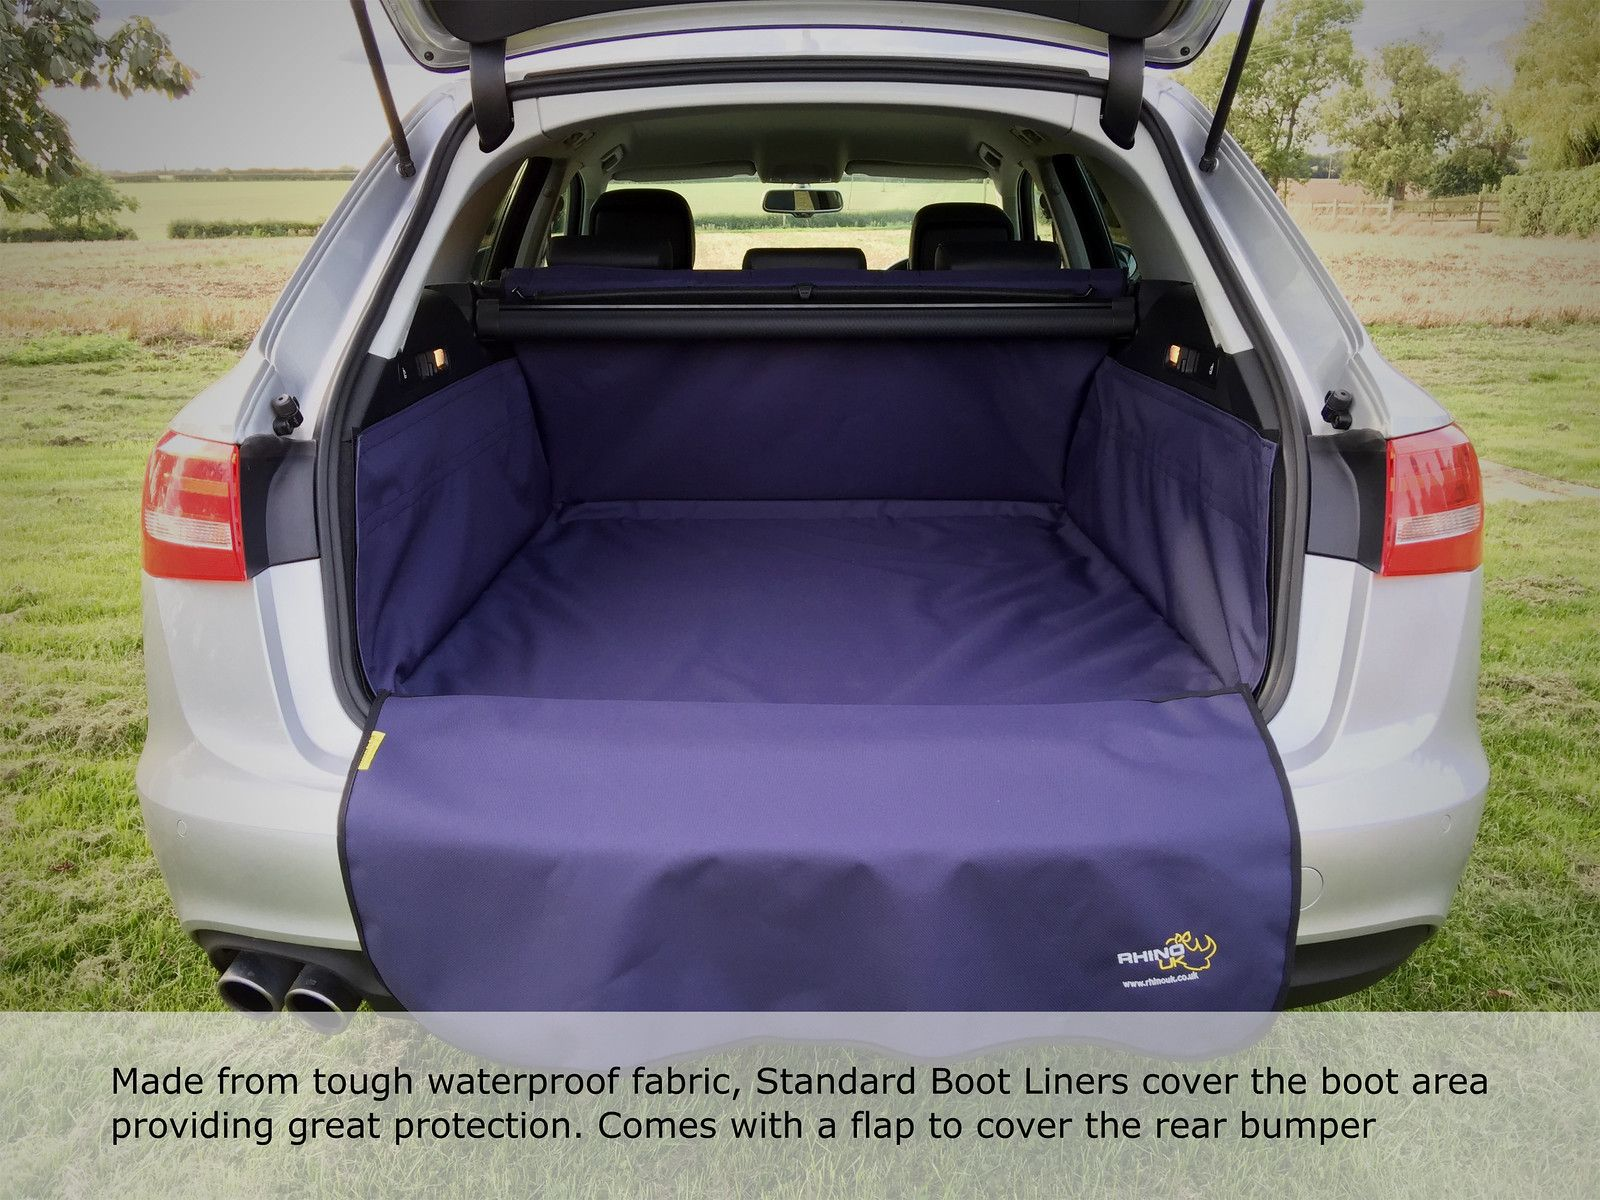 Subaru Boot Area Liner